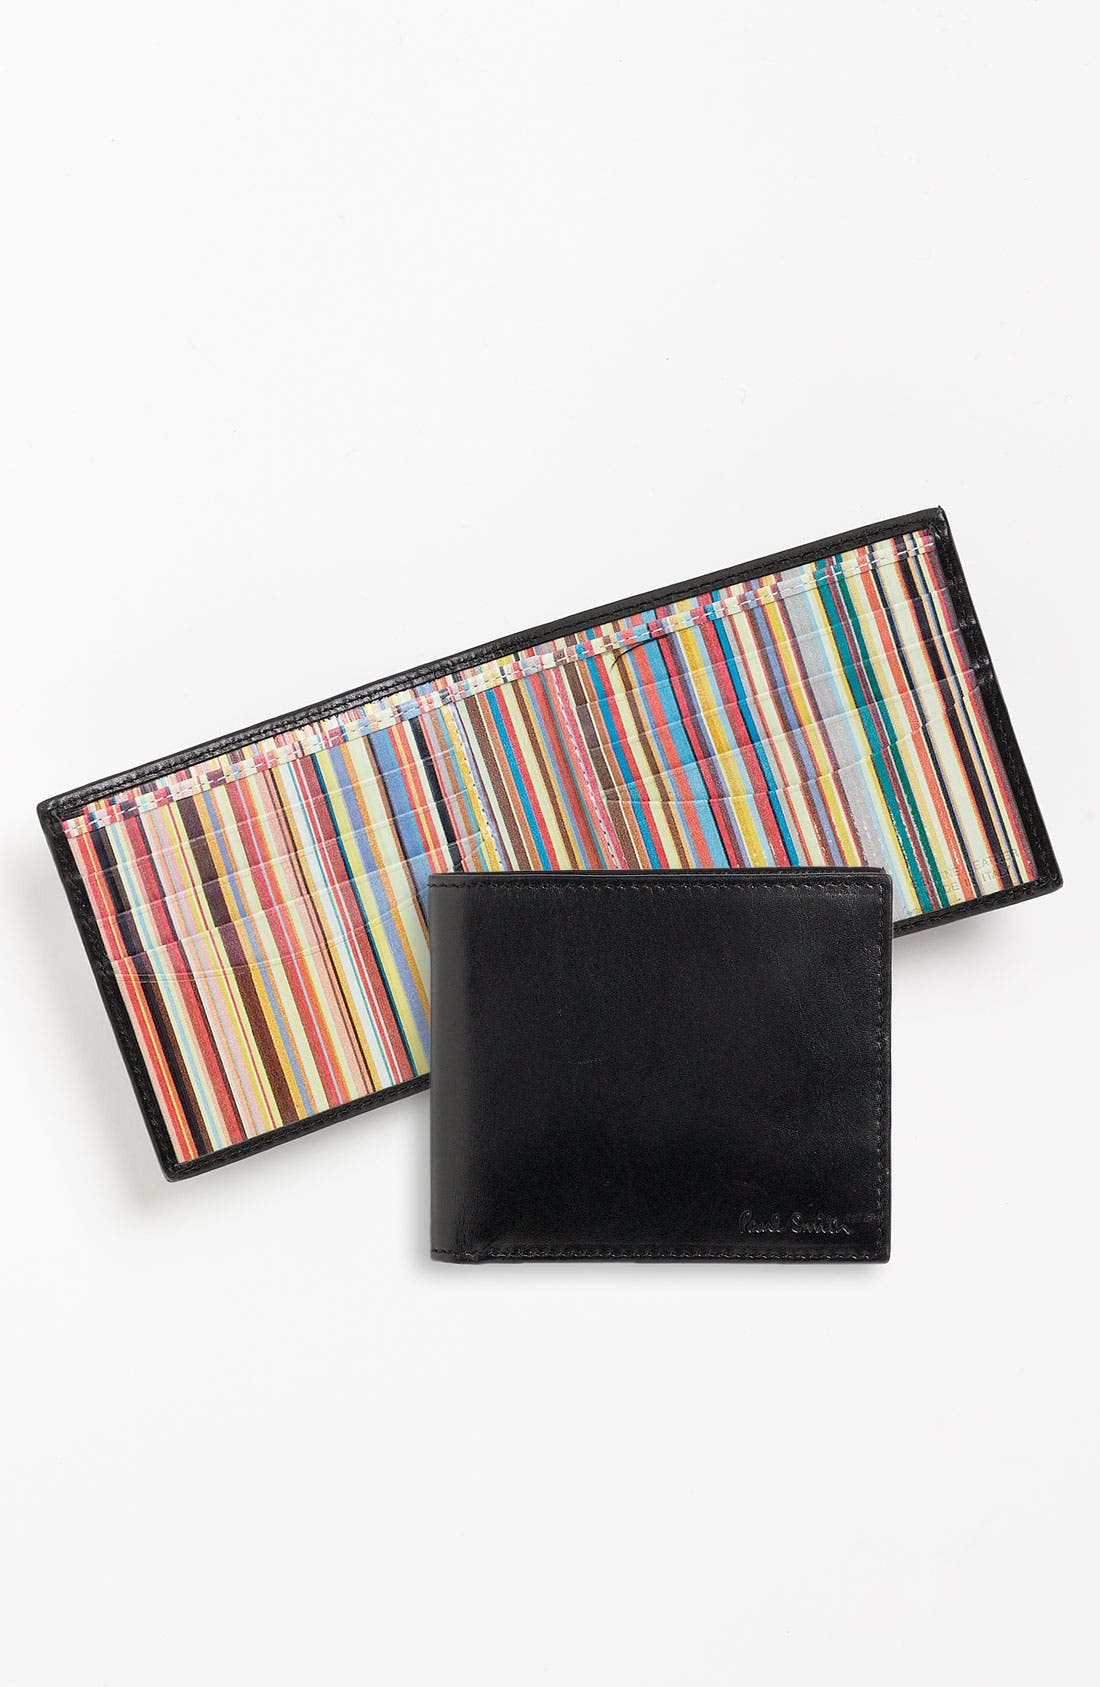 Alternate Image 1 Selected - Paul Smith Accessories Calfskin Leather Billfold Wallet